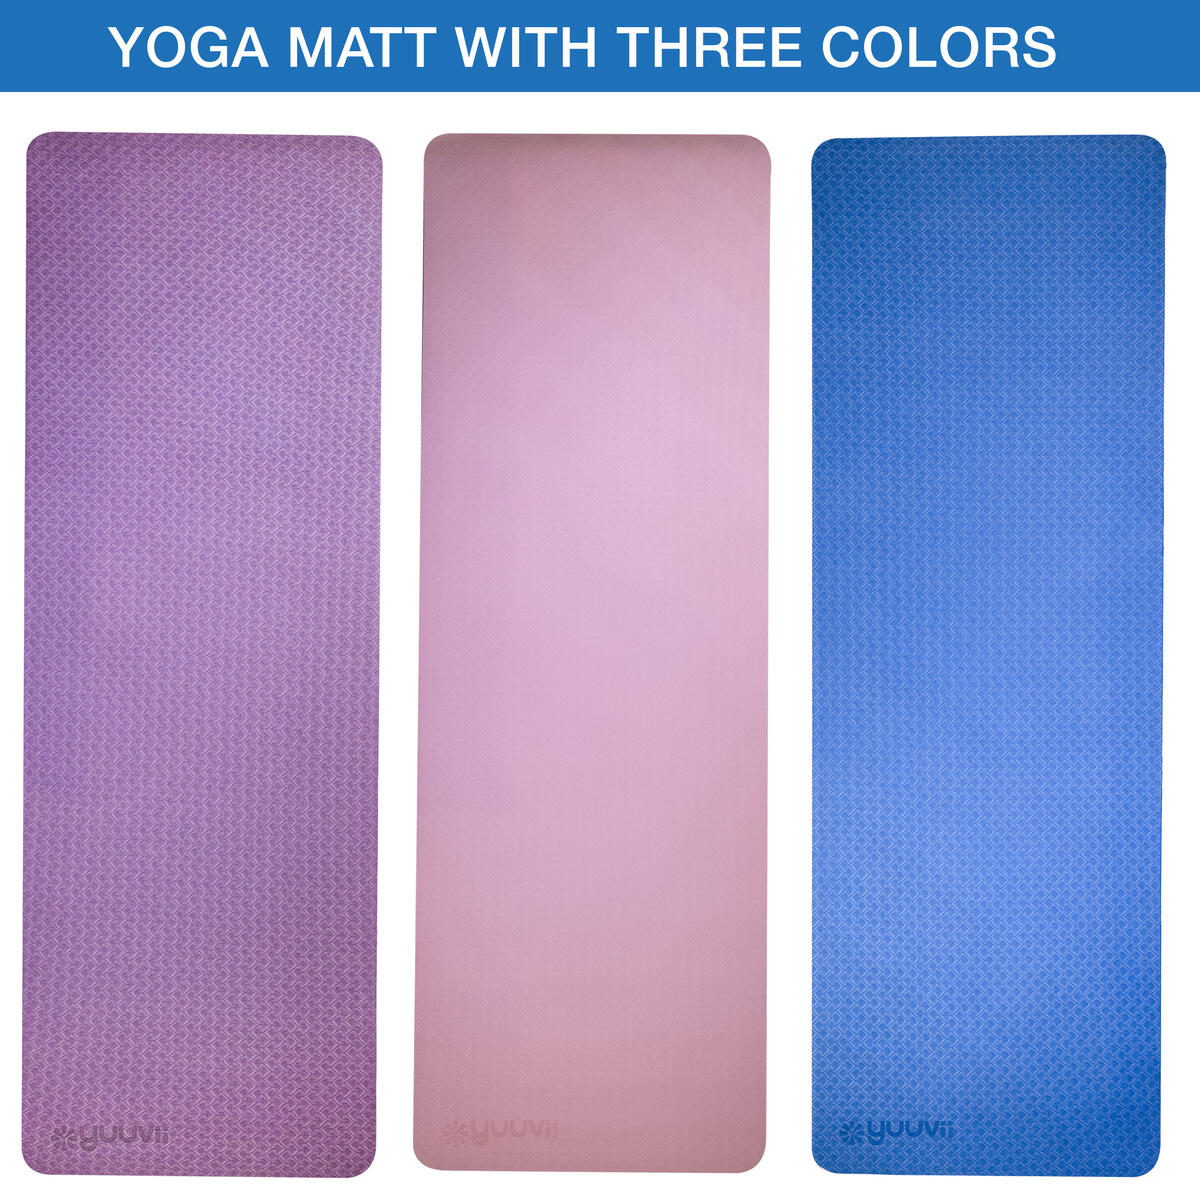 YuuVii Yoga Mat Set with Workout Resistance Bands, Mesh Travel Bag & Carrying Strap - Exercise Non-Slip Fitness Floor Mat for Women and Men - 1/4 Inch Soft, Extra Thick TPE